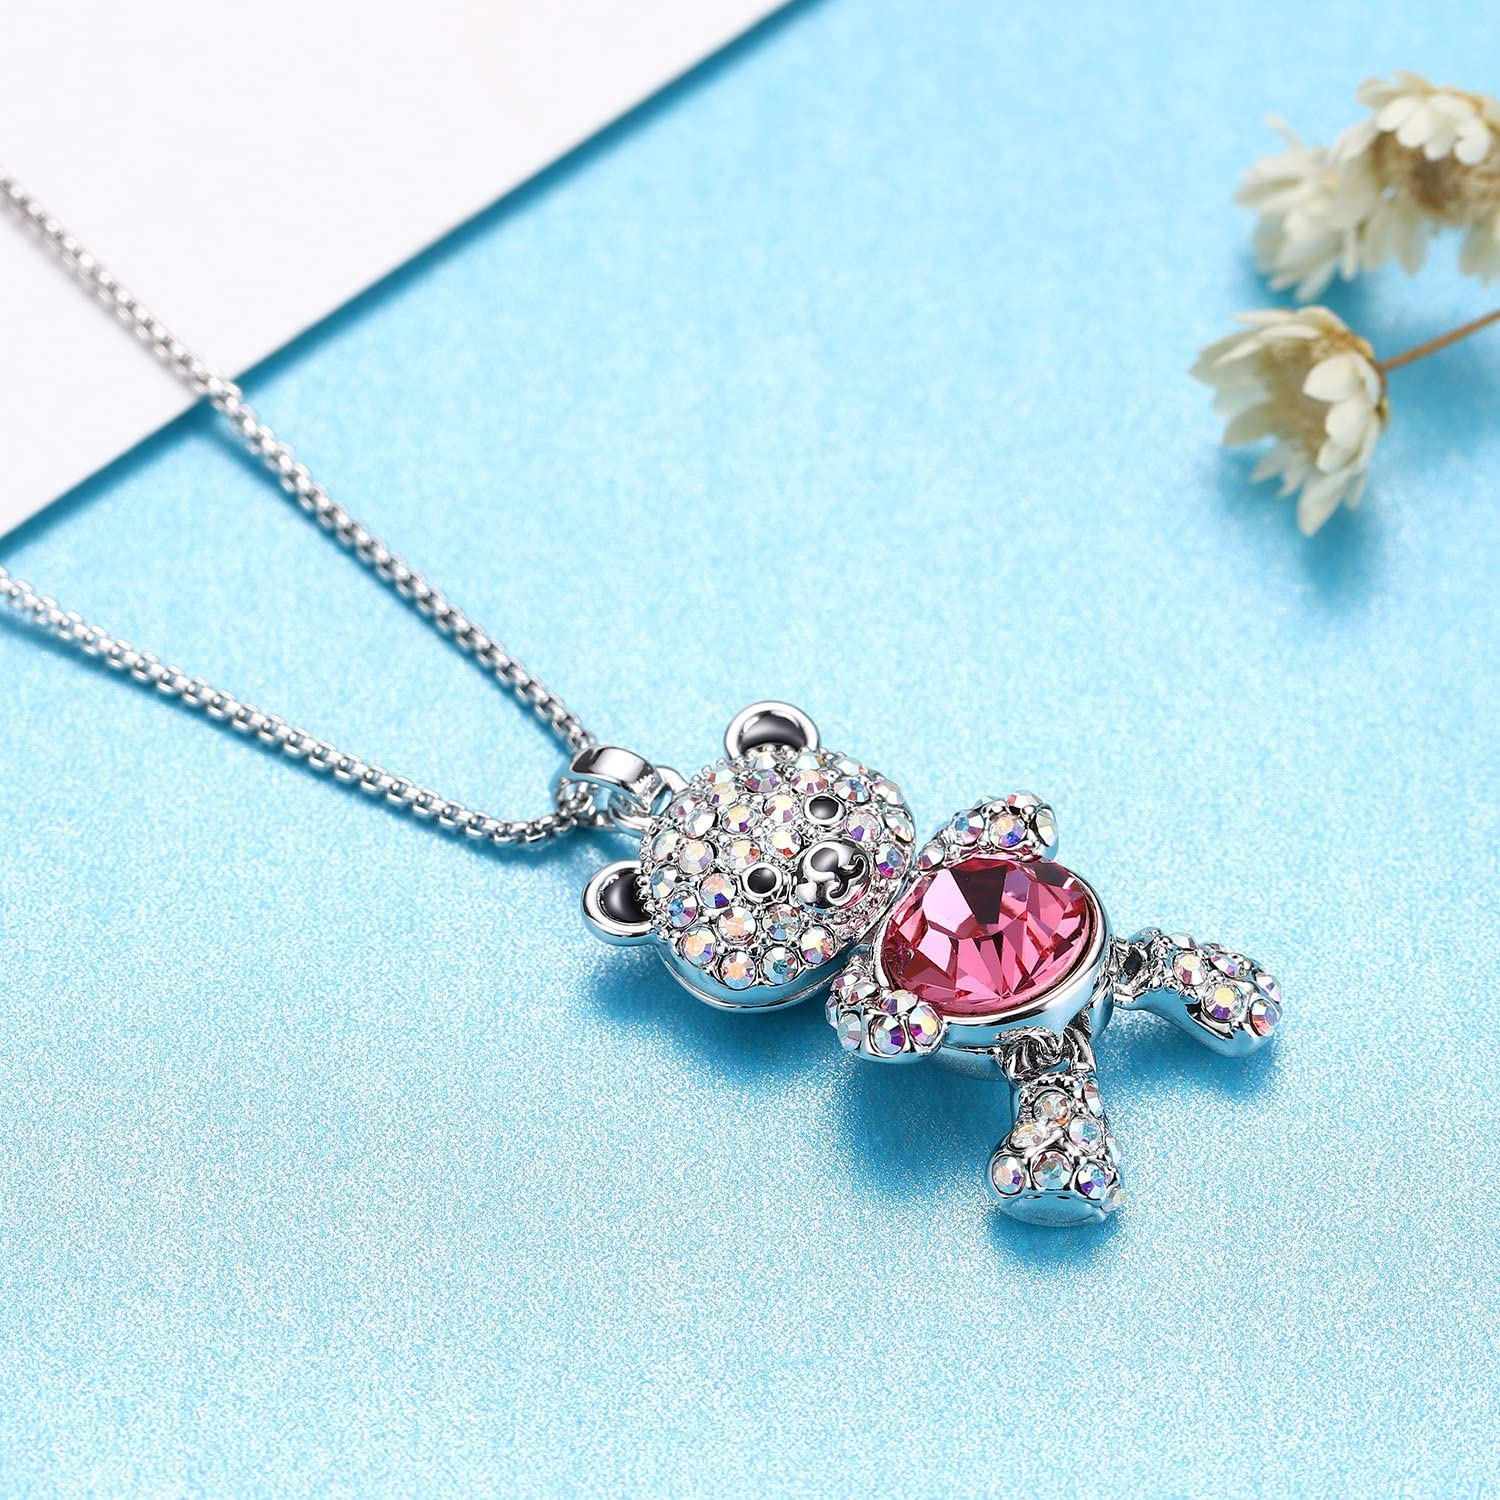 Pink Kalapure Girls Cute Bear Pendant Necklace with Swarovski Elements Crystals for Women Girlfriend birthday gift 18